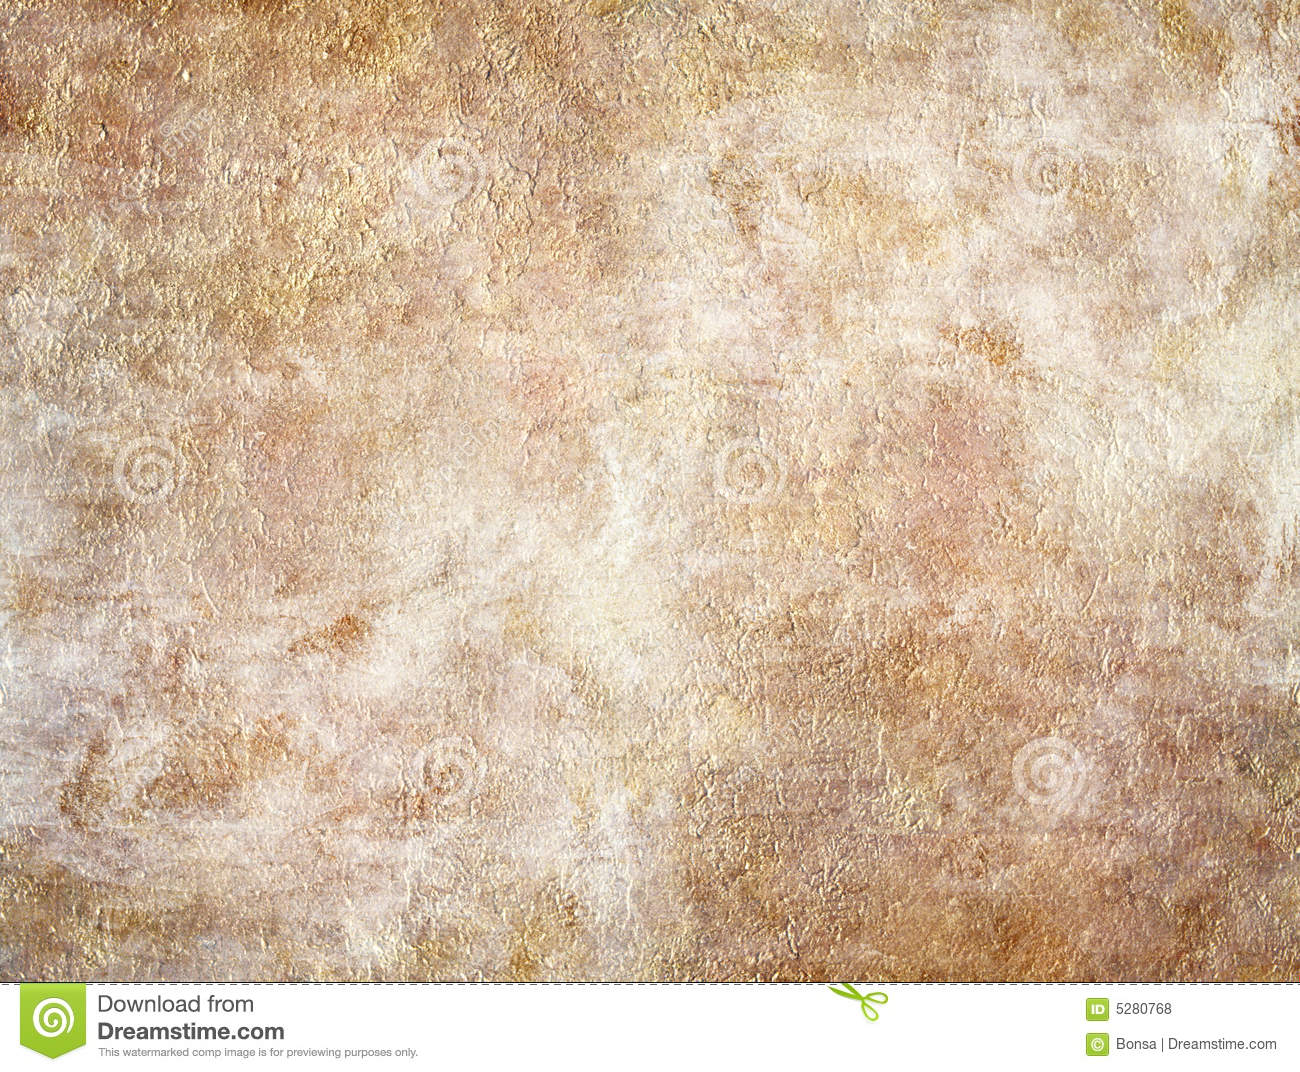 Stucco Texture Royalty Free Stock Photos - Image: 5280768